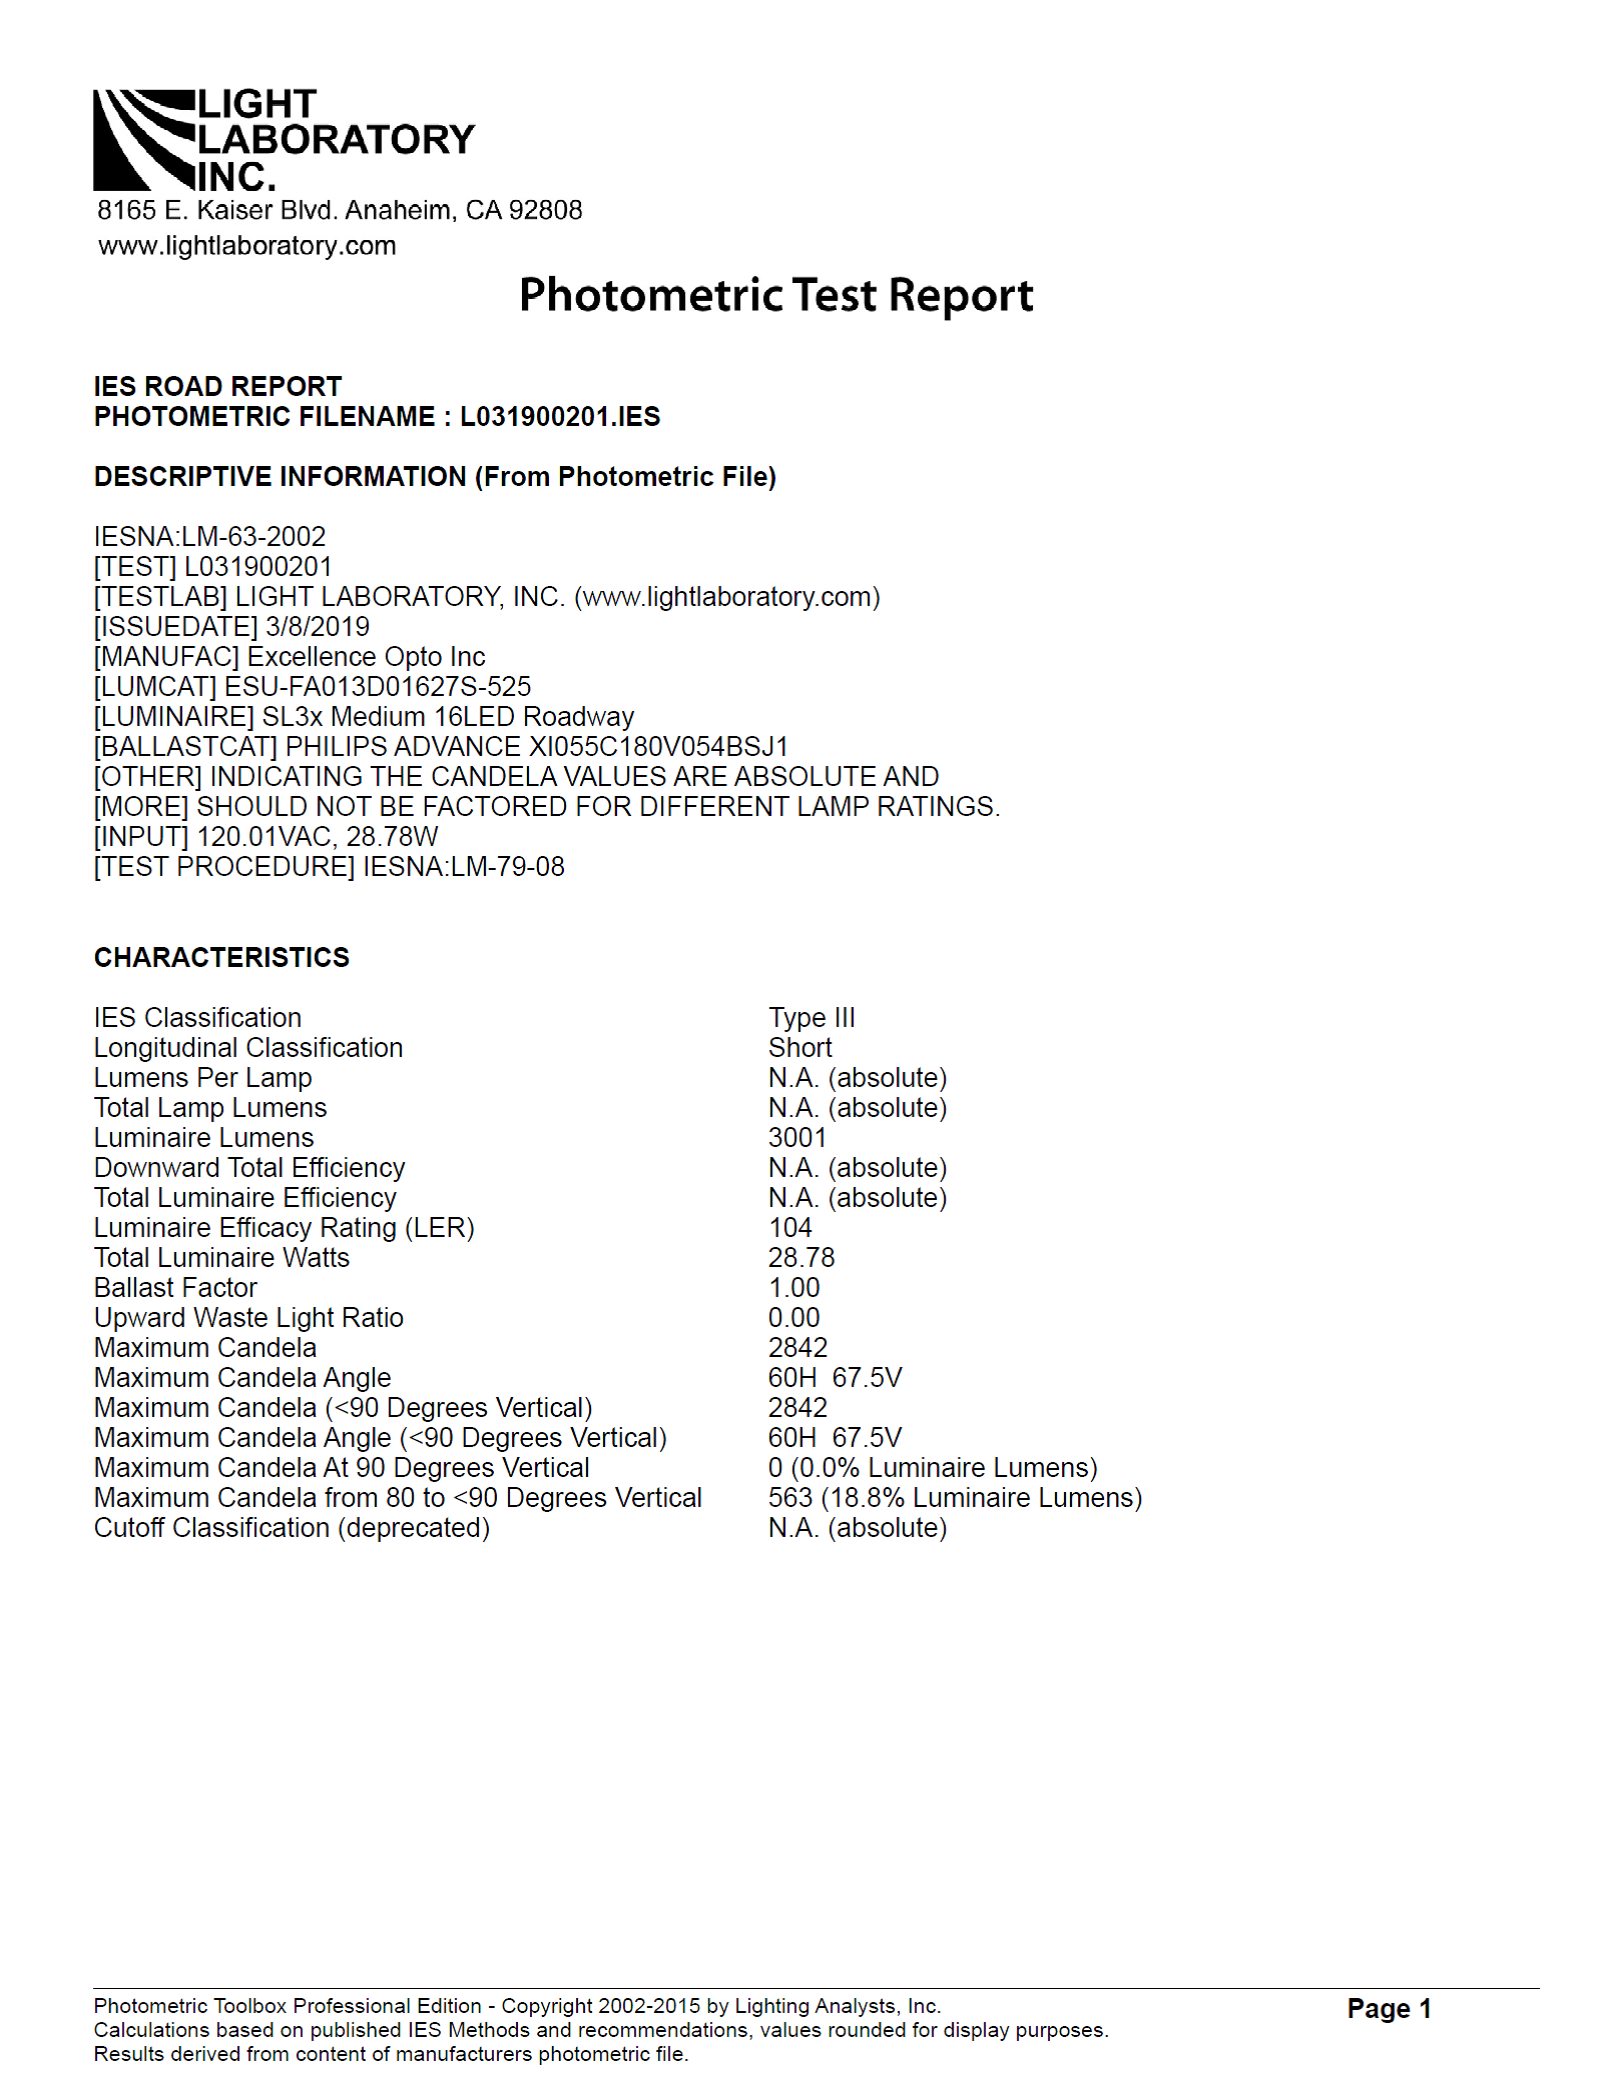 Photometric test report